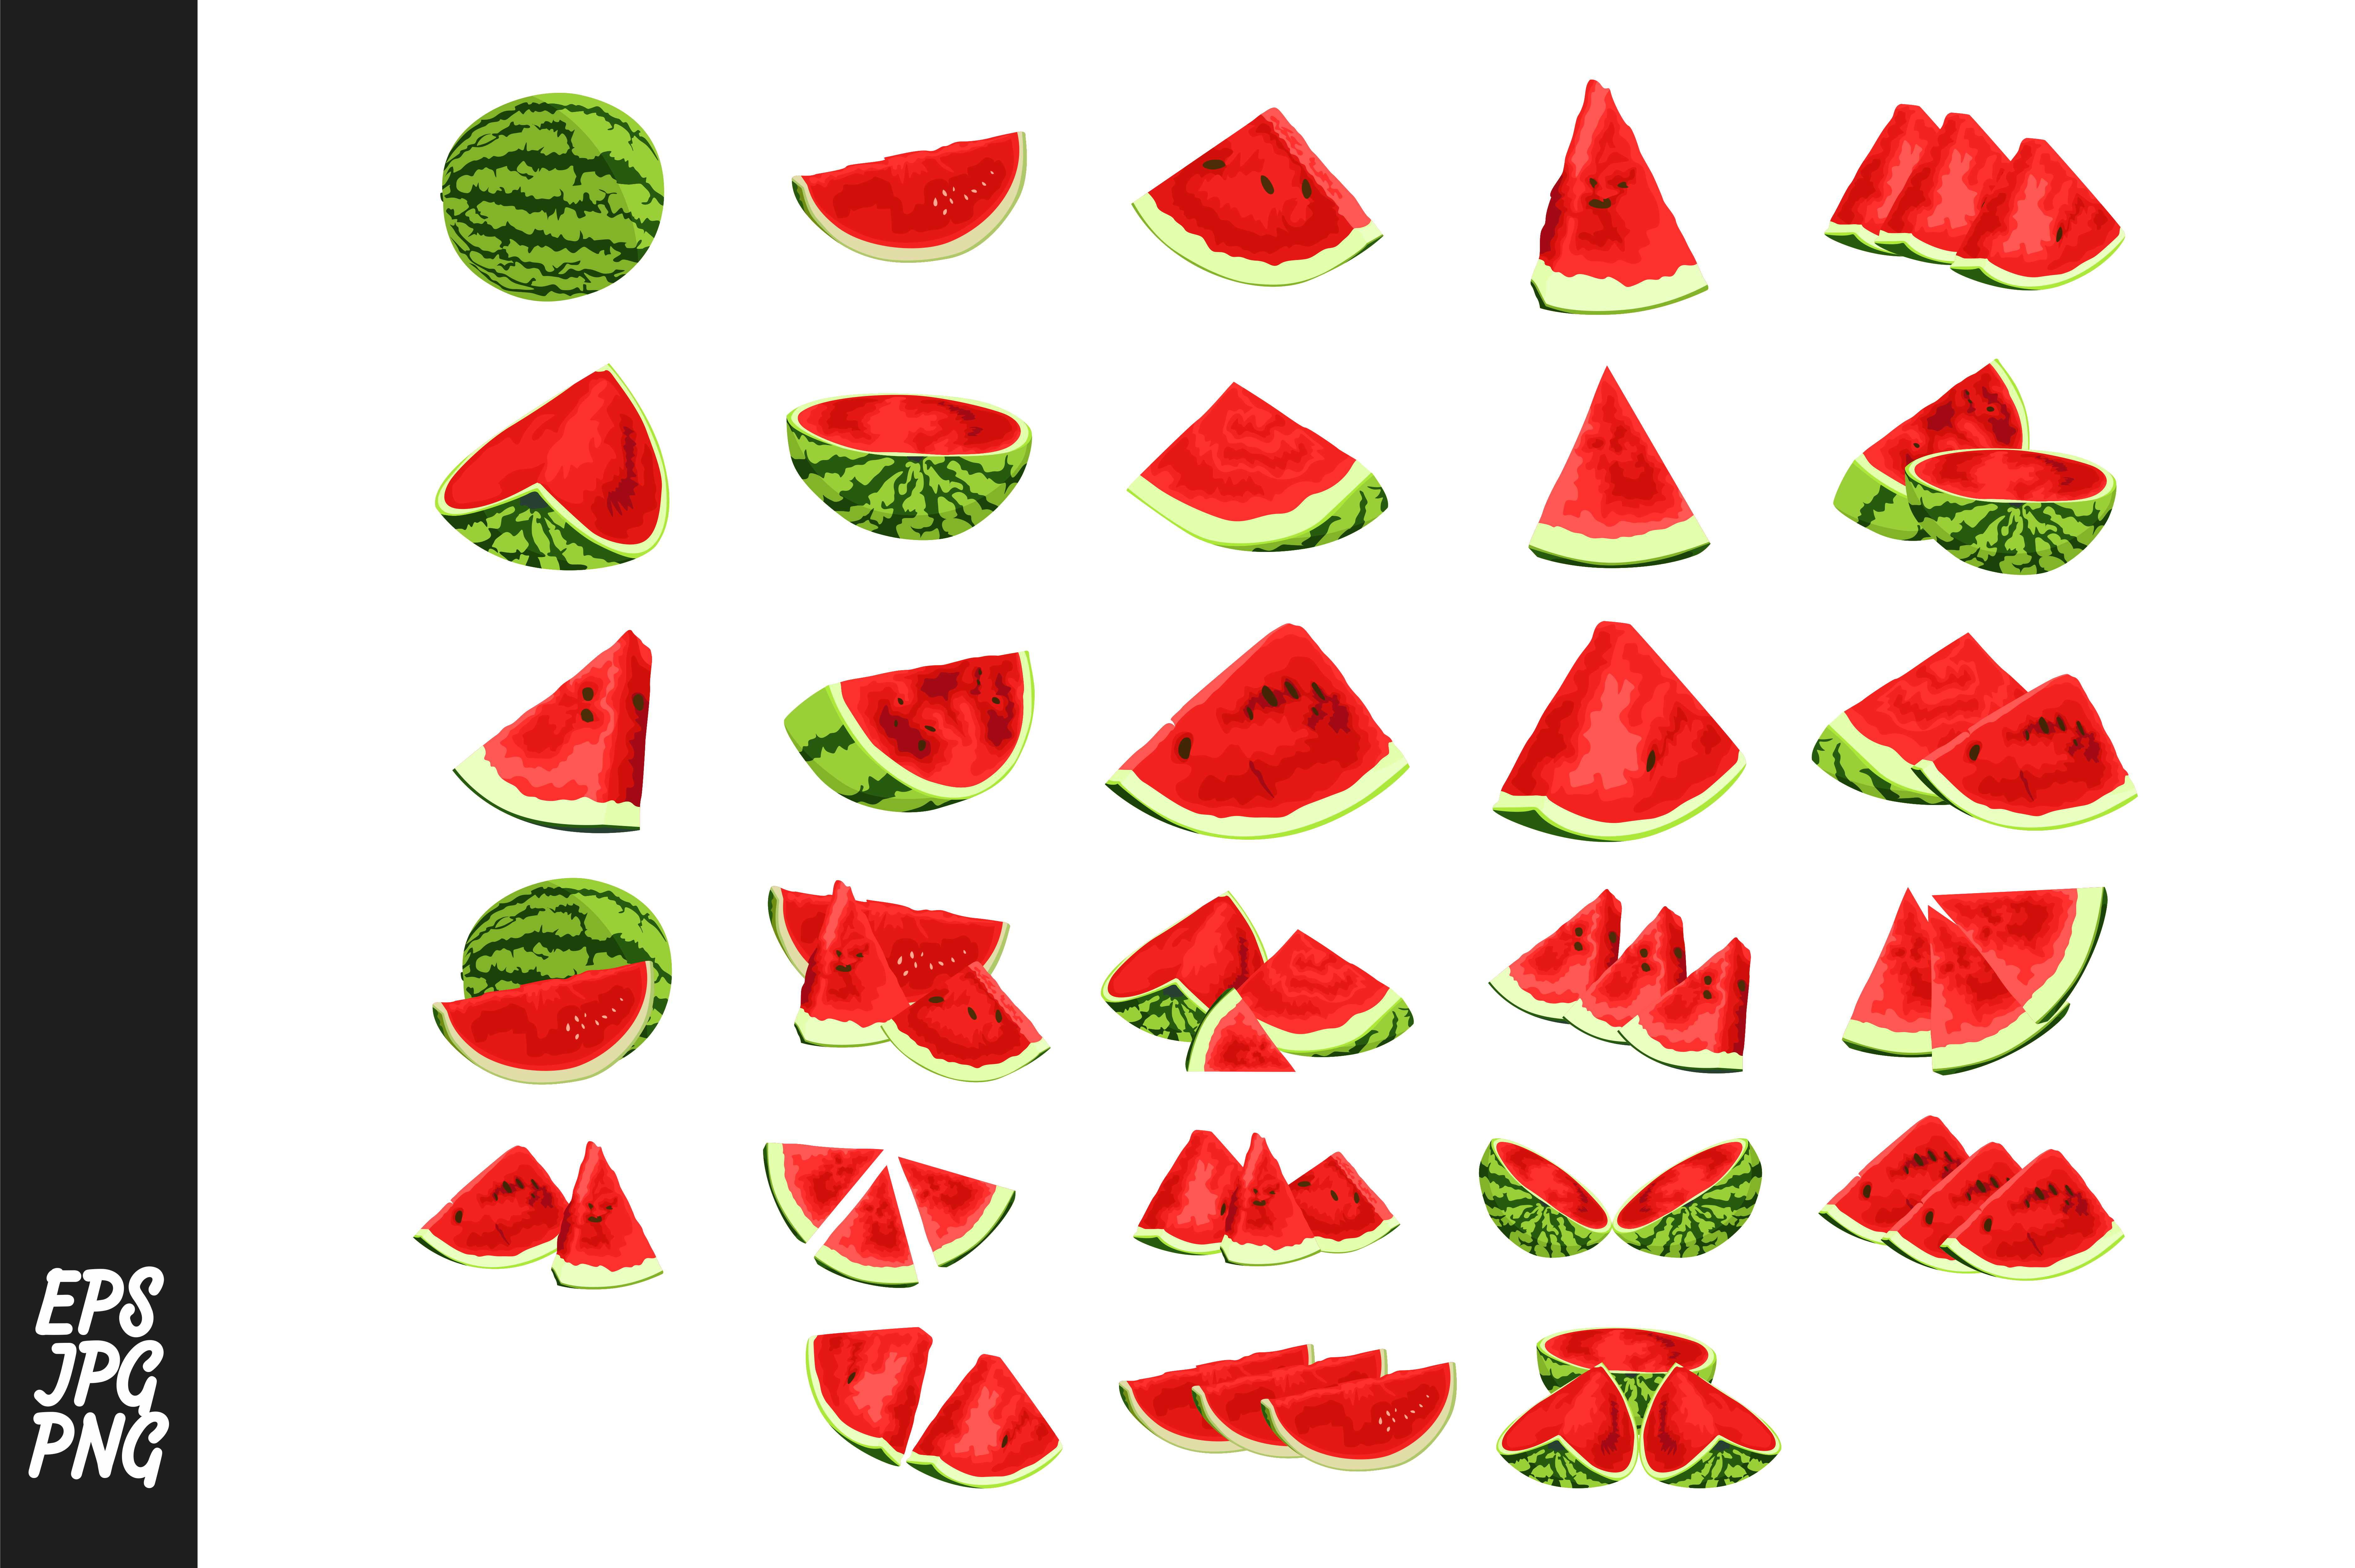 Download Free Red Watermelons Vector Bundle Graphic By Arief Sapta Adjie for Cricut Explore, Silhouette and other cutting machines.